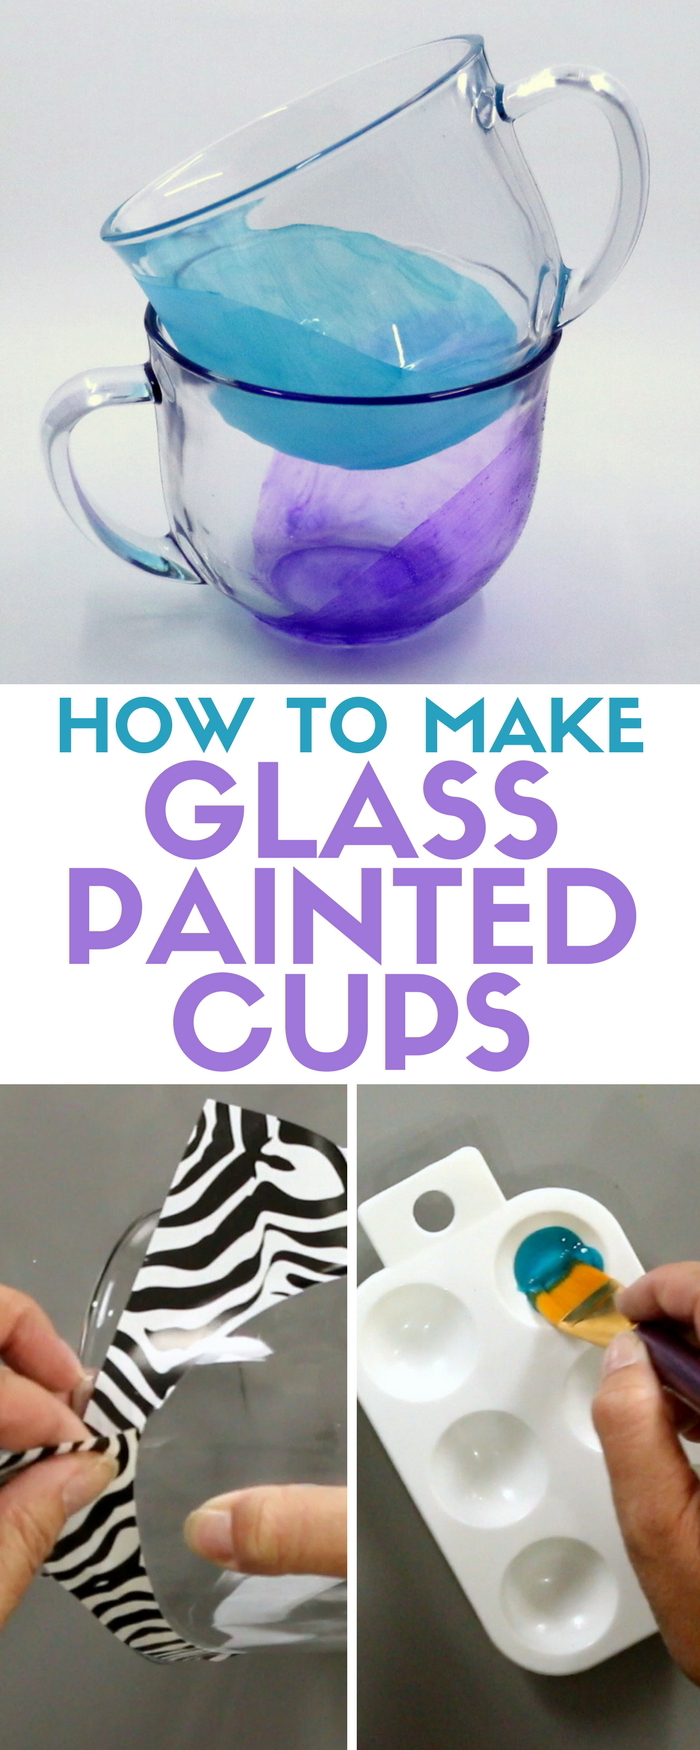 Learn how to add color to your favorite drinking cups with Americana Gloss Enamels Glass Paint. An easy DIY craft tutorial idea.